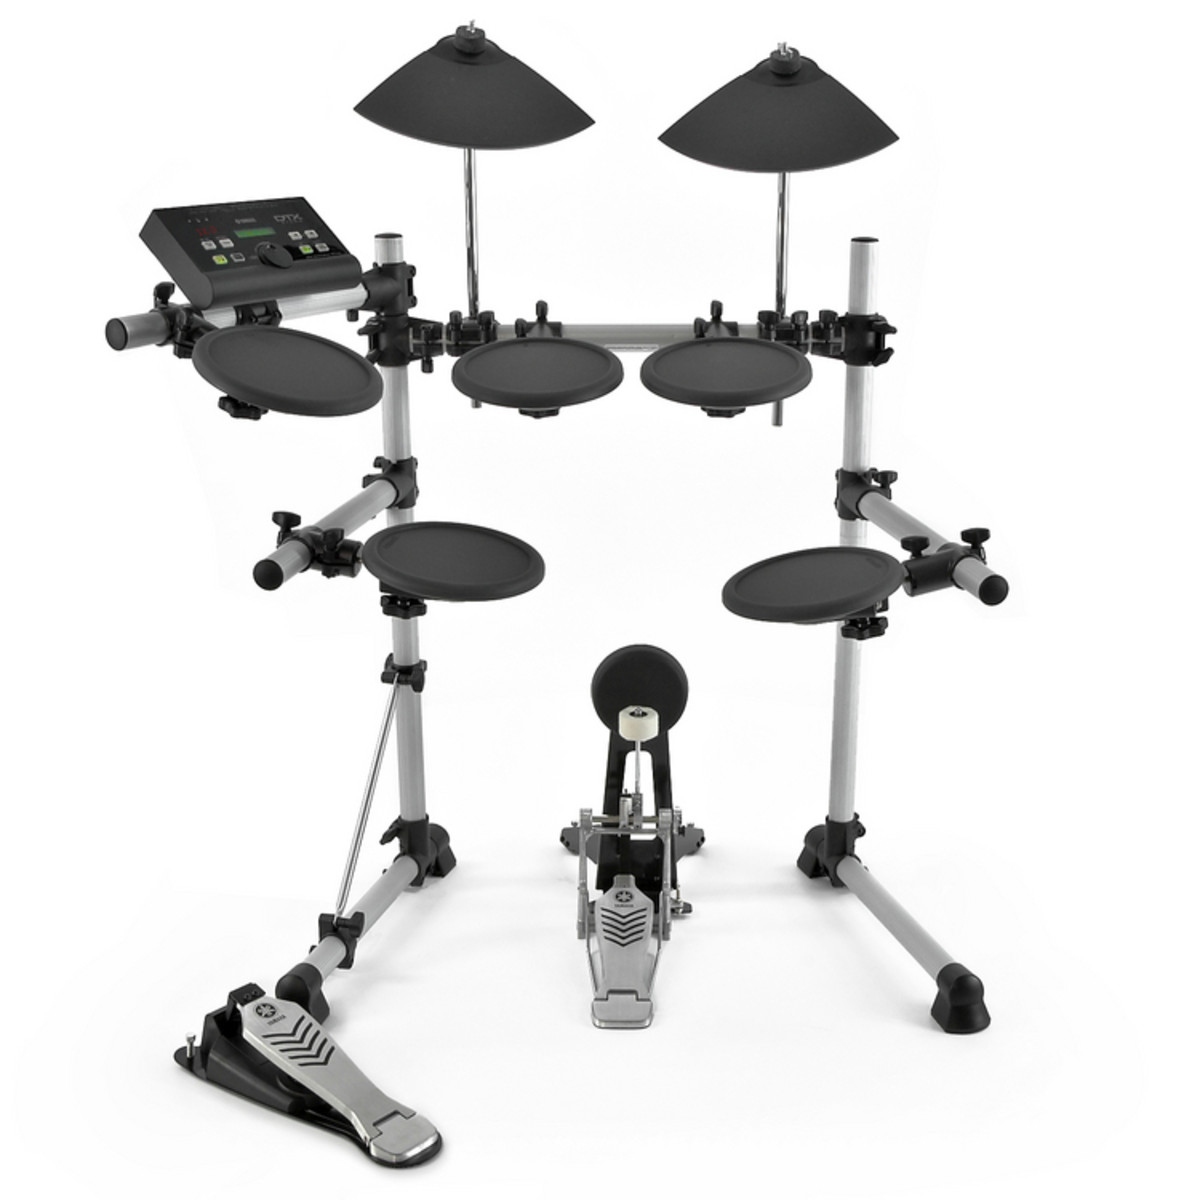 Disc yamaha dtx500k electronic drum kit at for Yamaha electronic drum set